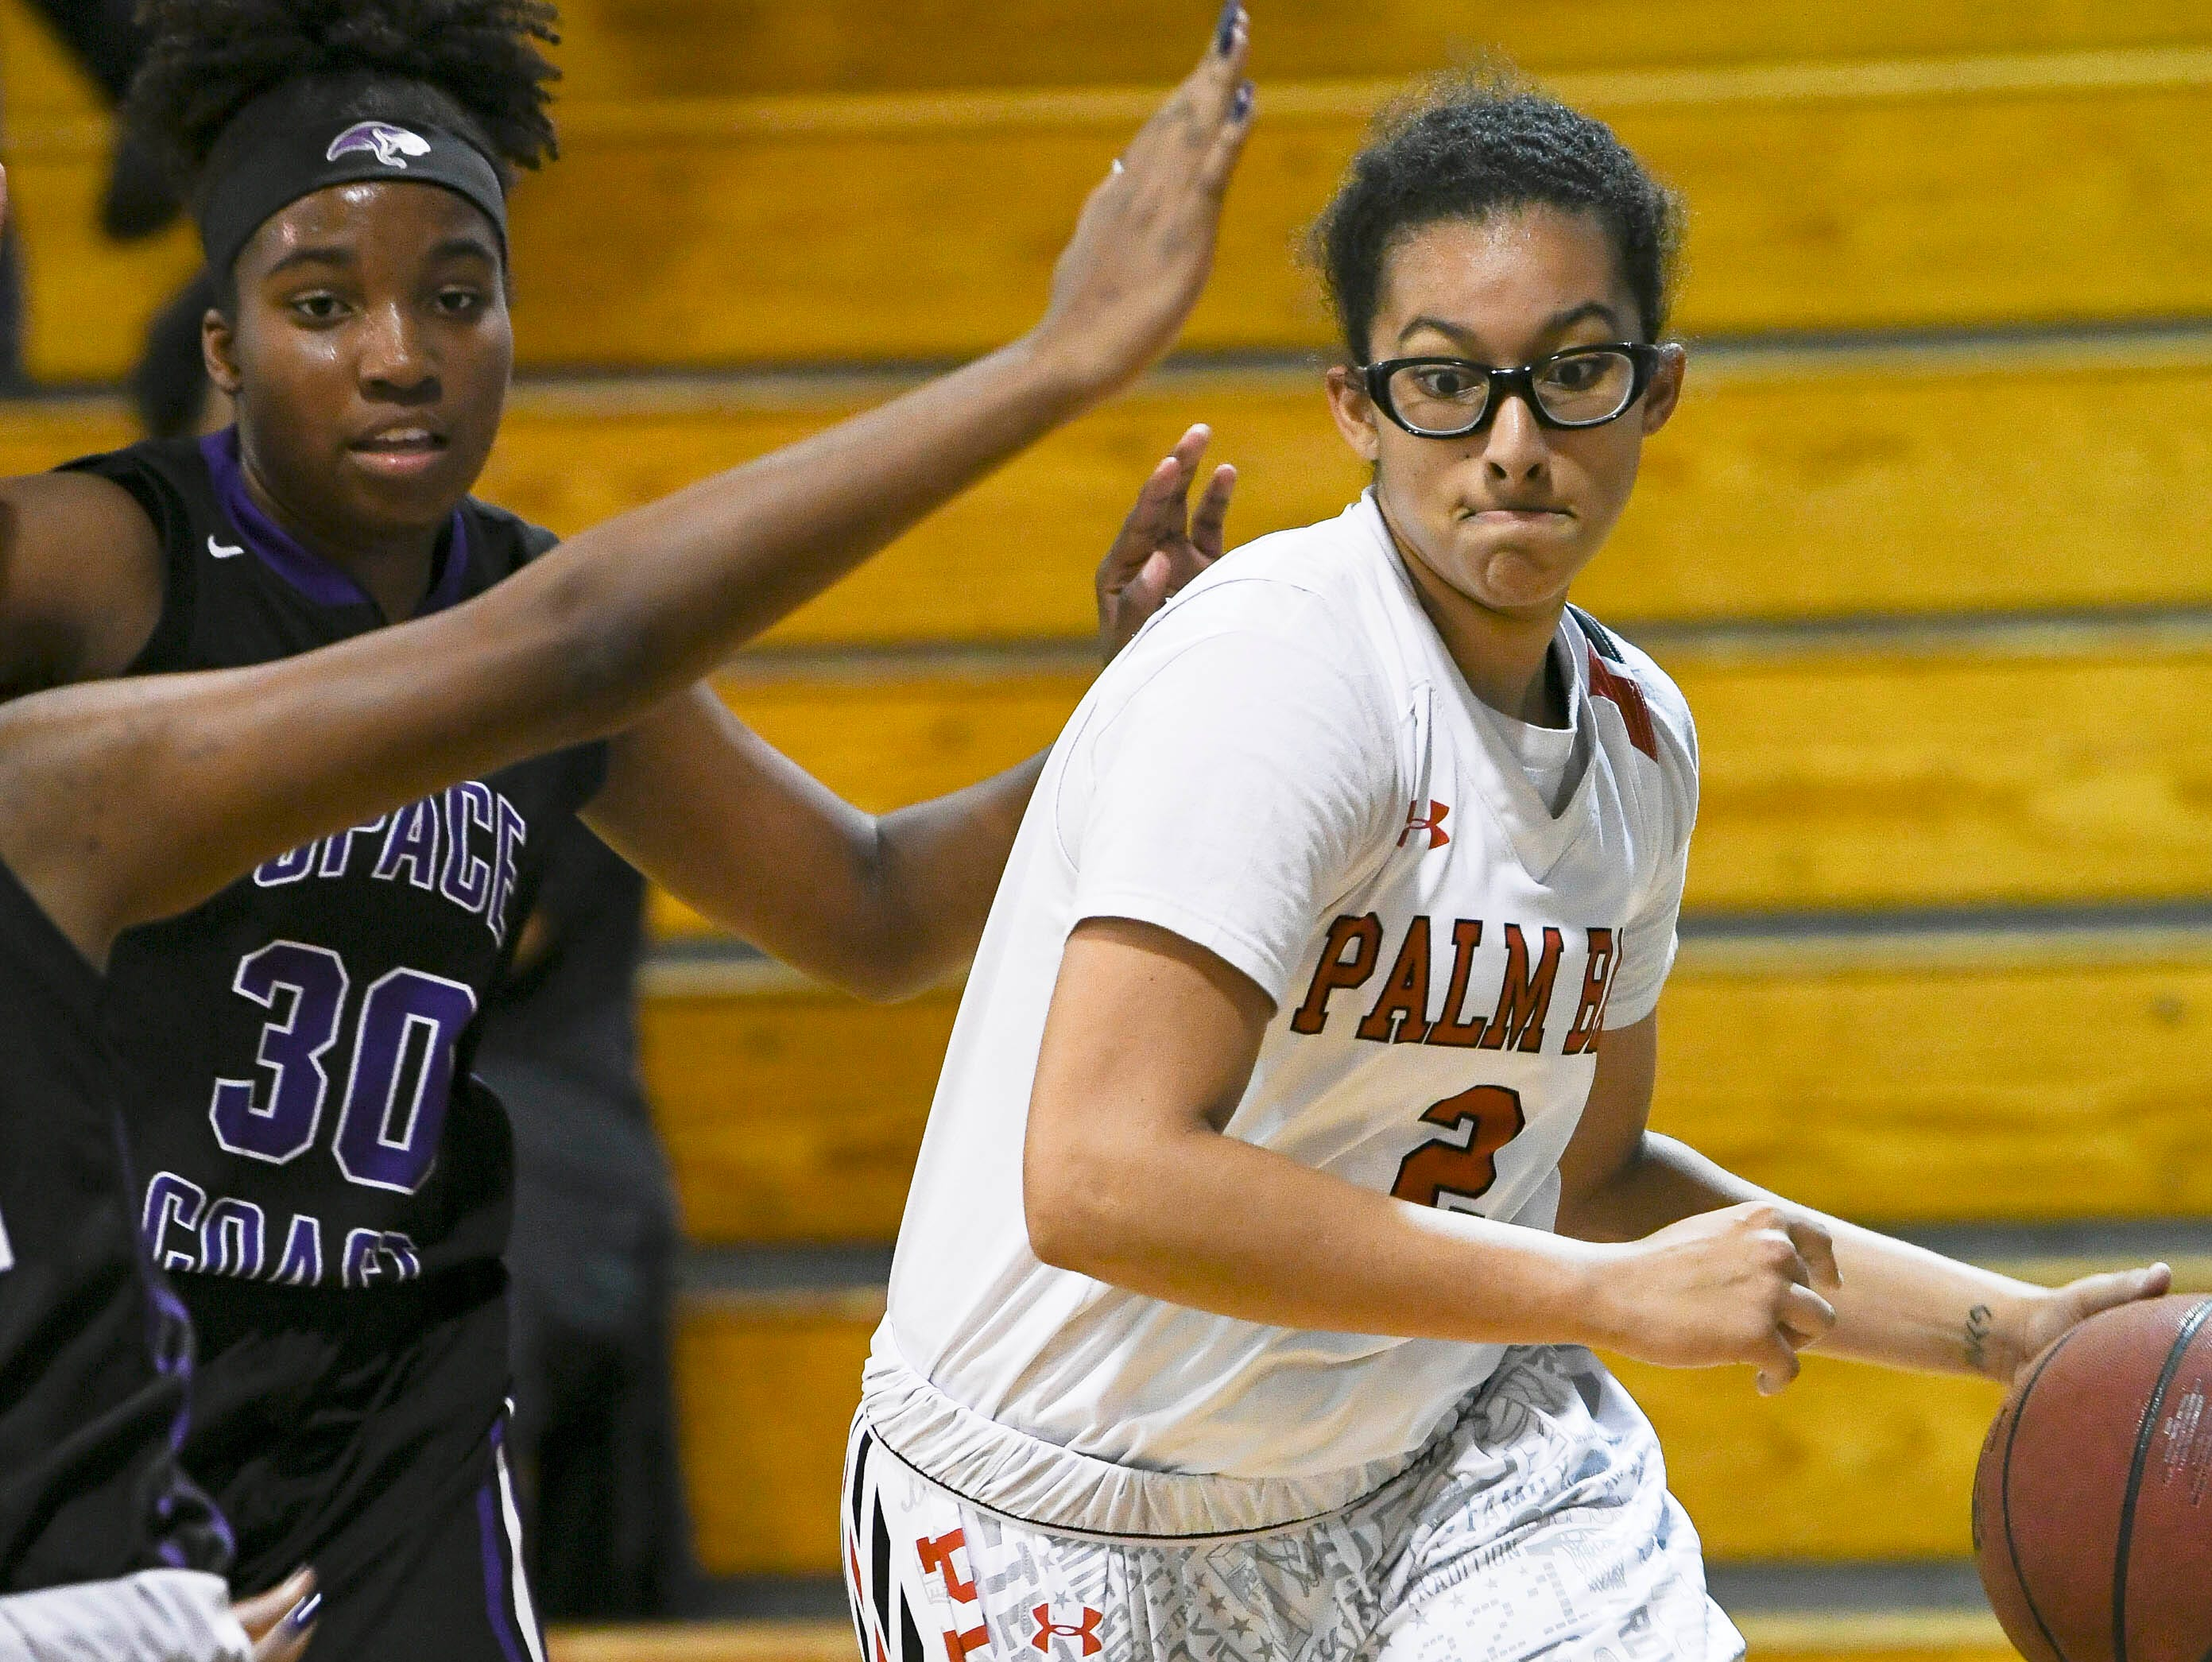 Palm Bay's Mary Penland-Holmes dribbles around Kaili Thomas Brooks of Space Coast during Thursday's District 14-6A basketball tournament at Rockledge High School.